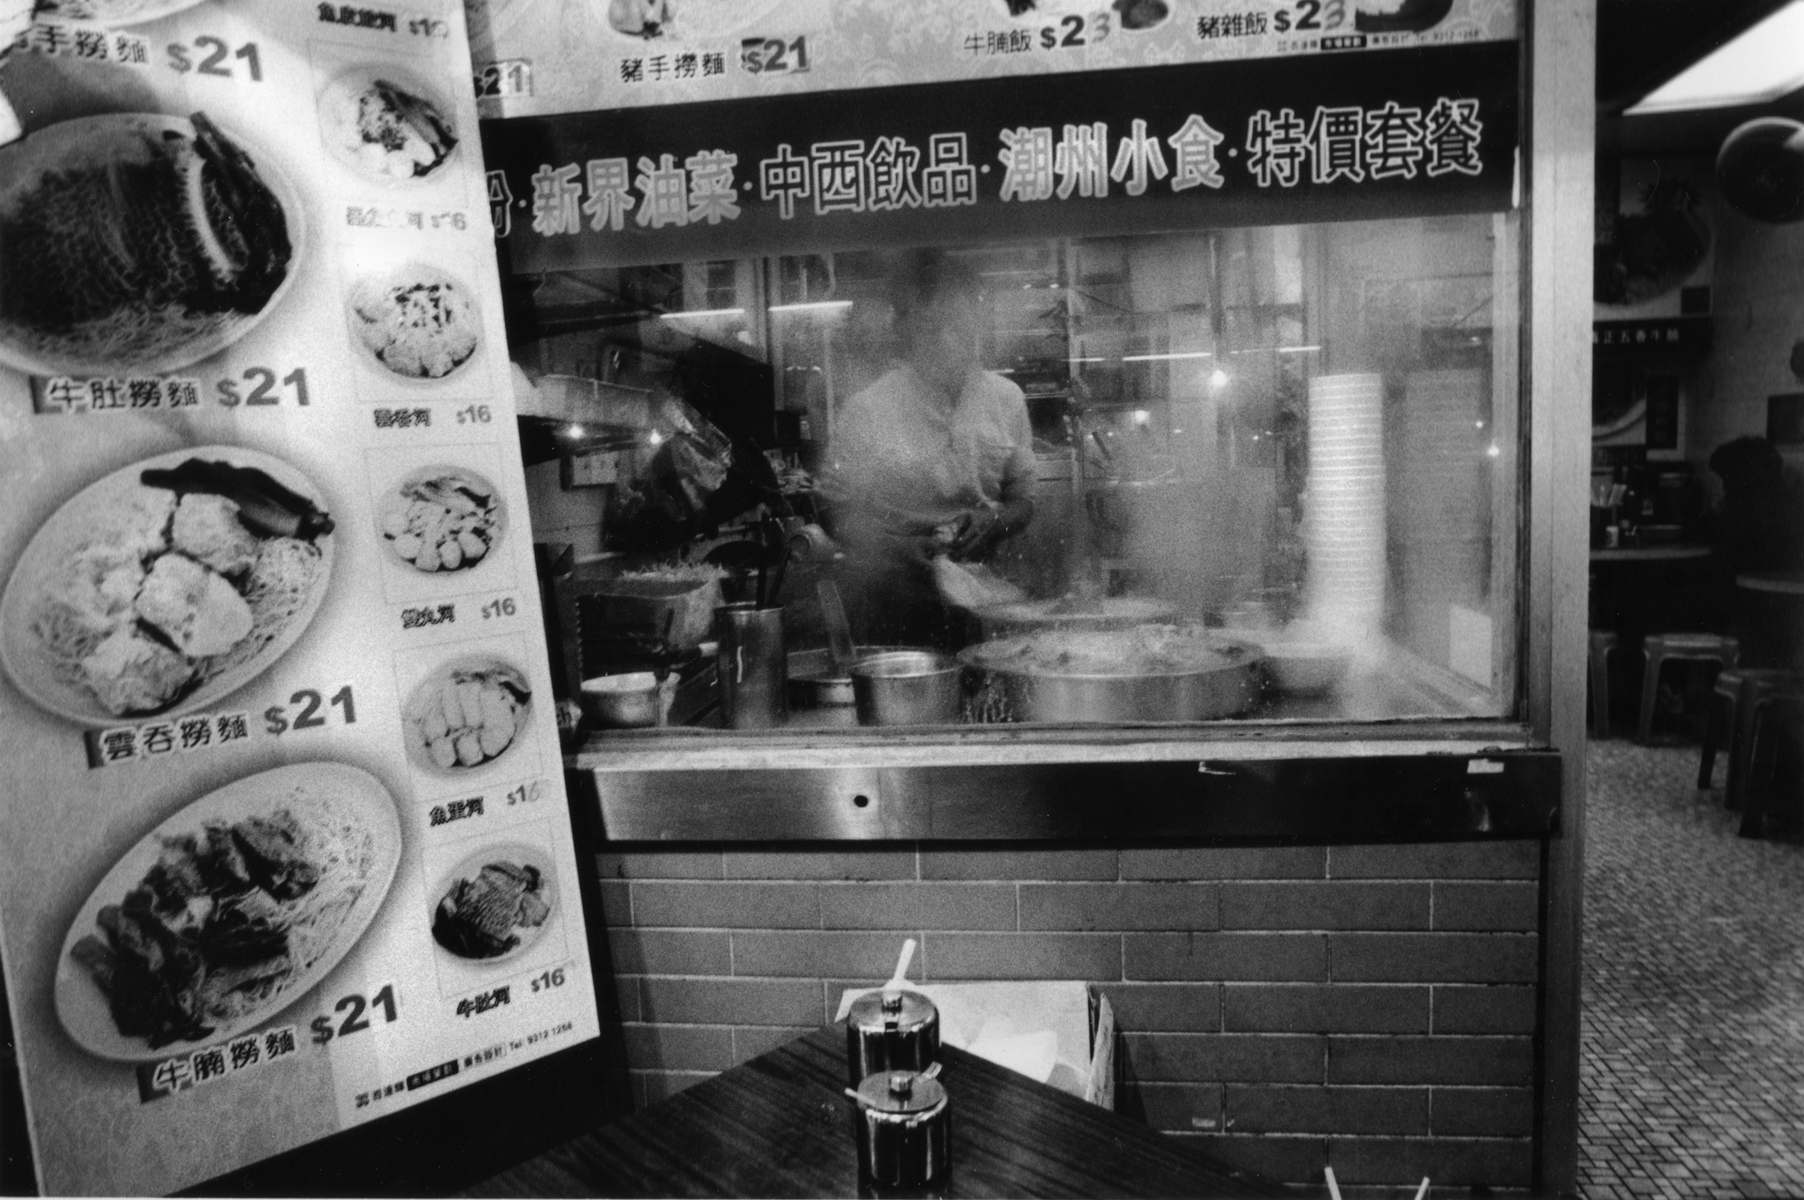 Some Restaurants are open all night in hopes to attract more businees for the late night crowd. Kowloon Peneinsula, Hong Kong